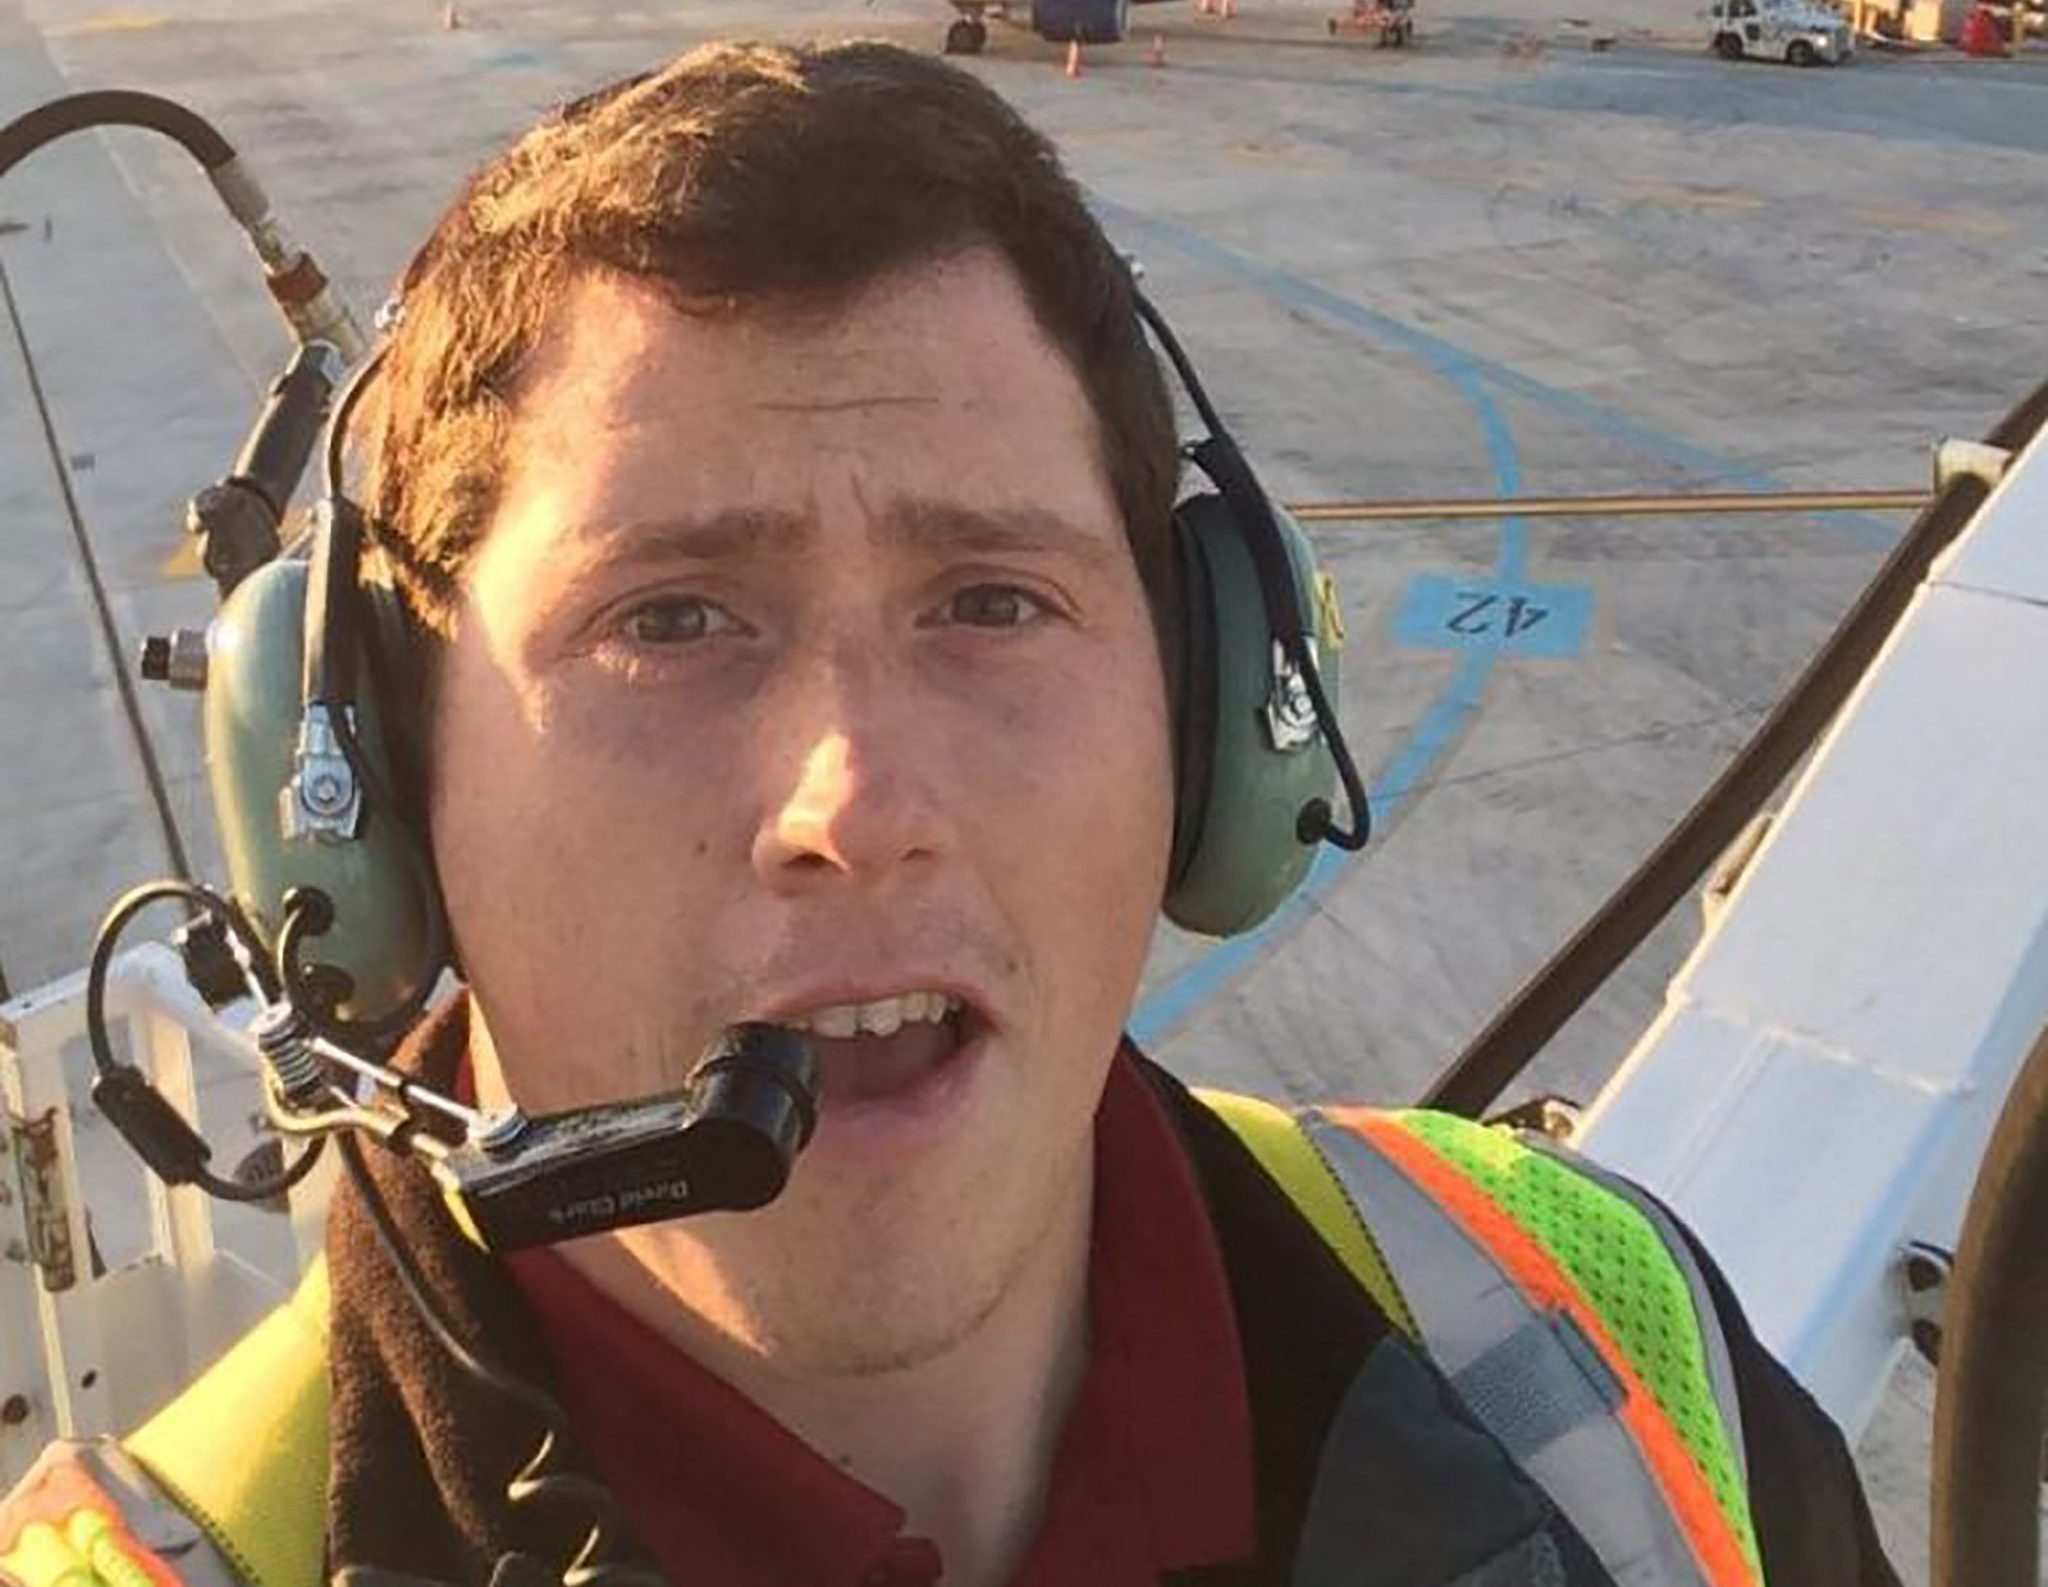 "This undated selfie picture available on social media on August 11, 2018 shows Richard B Russell, a ground service agent at the Seattle-Tacoma International Airport, who stole a plane and flew it for about an hour on August 10 before crashing on an island south of Seattle. - Horizon Air employee Richard Russell told an air traffic controller he was ""just a broken man"" minutes before dying late Friday in the Bombardier Q400 twin-engine turboprop plane, appearing to apologize for his actions. Law enforcement officials identified him to US media. (Photo by - / Social Media / AFP)-/AFP/Getty Images"